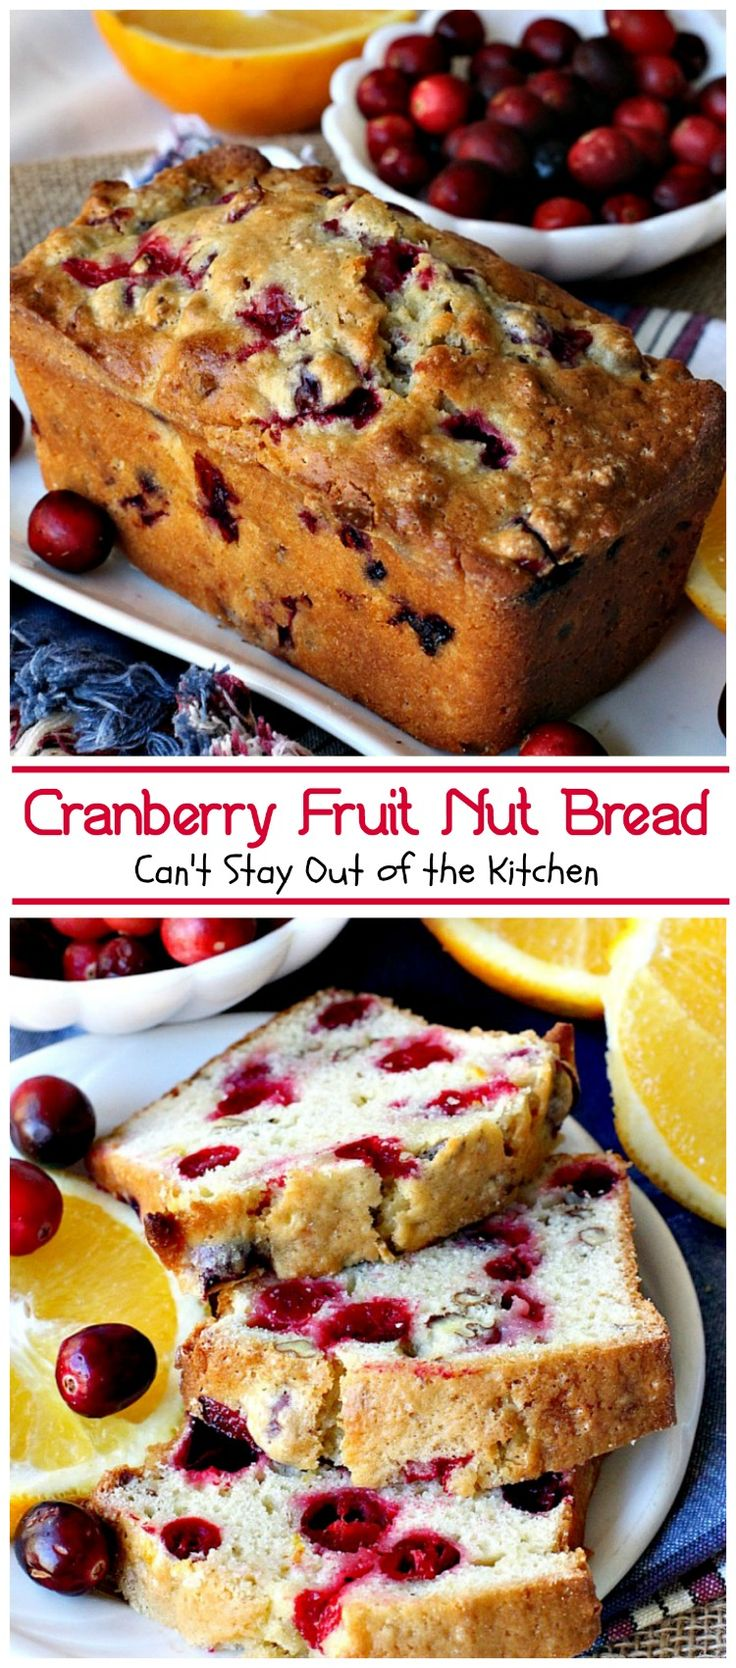 Delicious cranberry bread made with orange juice, orange zest, cranberries and pecans. Great for holiday baking.